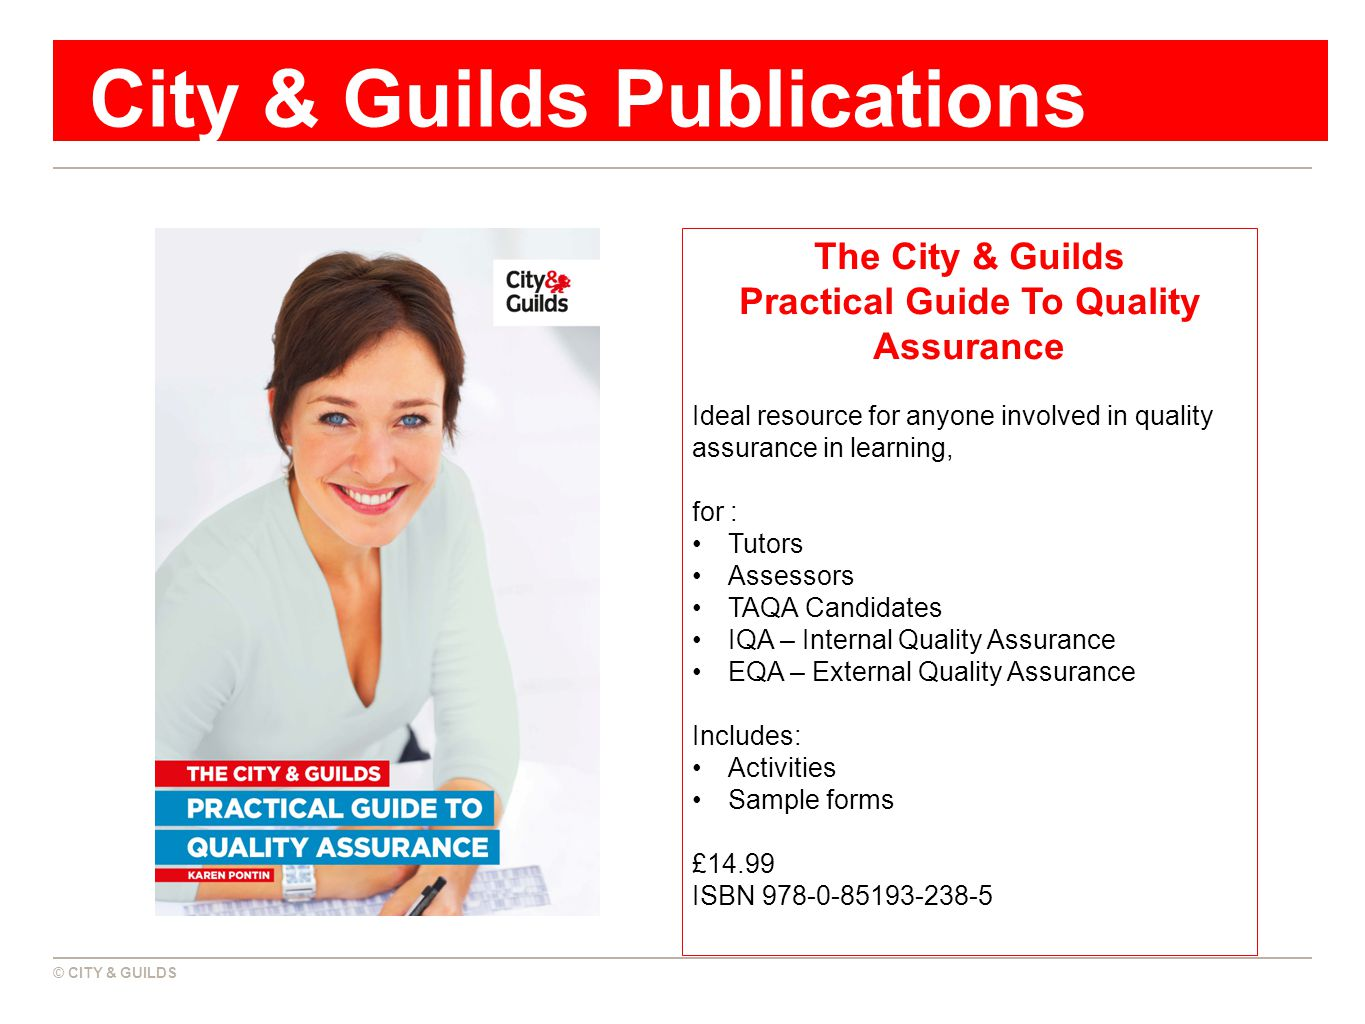 © CITY & GUILDS City & Guilds Publications The City & Guilds Practical Guide To Quality Assurance Ideal resource for anyone involved in quality assurance in learning, for : Tutors Assessors TAQA Candidates IQA – Internal Quality Assurance EQA – External Quality Assurance Includes: Activities Sample forms £14.99 ISBN 978-0-85193-238-5